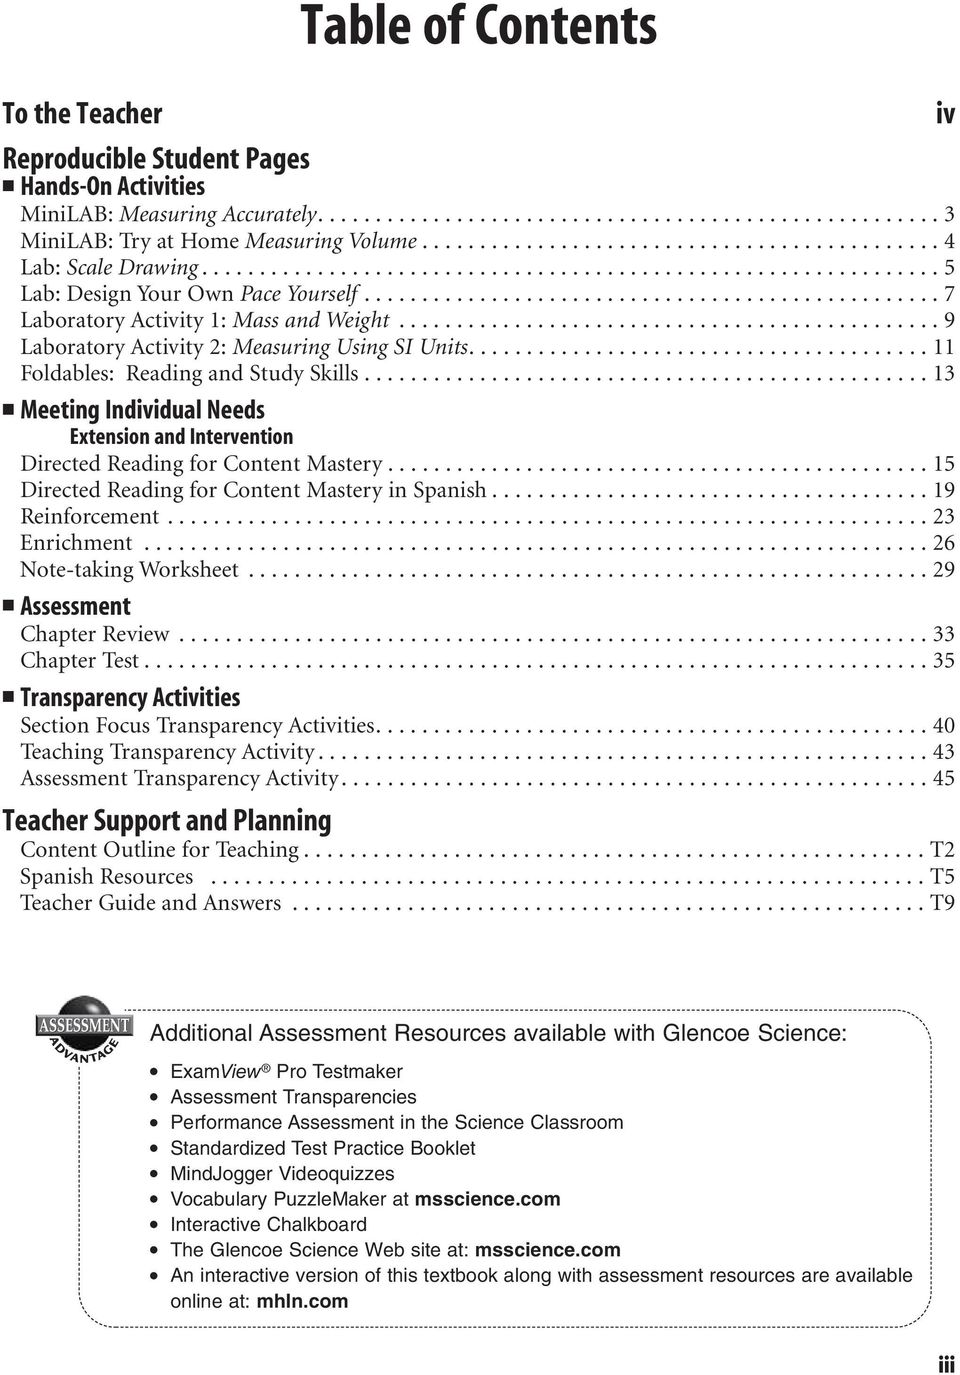 worksheet Cuantos Hay Worksheet lab worksheets for each student edition activity laboratory 4